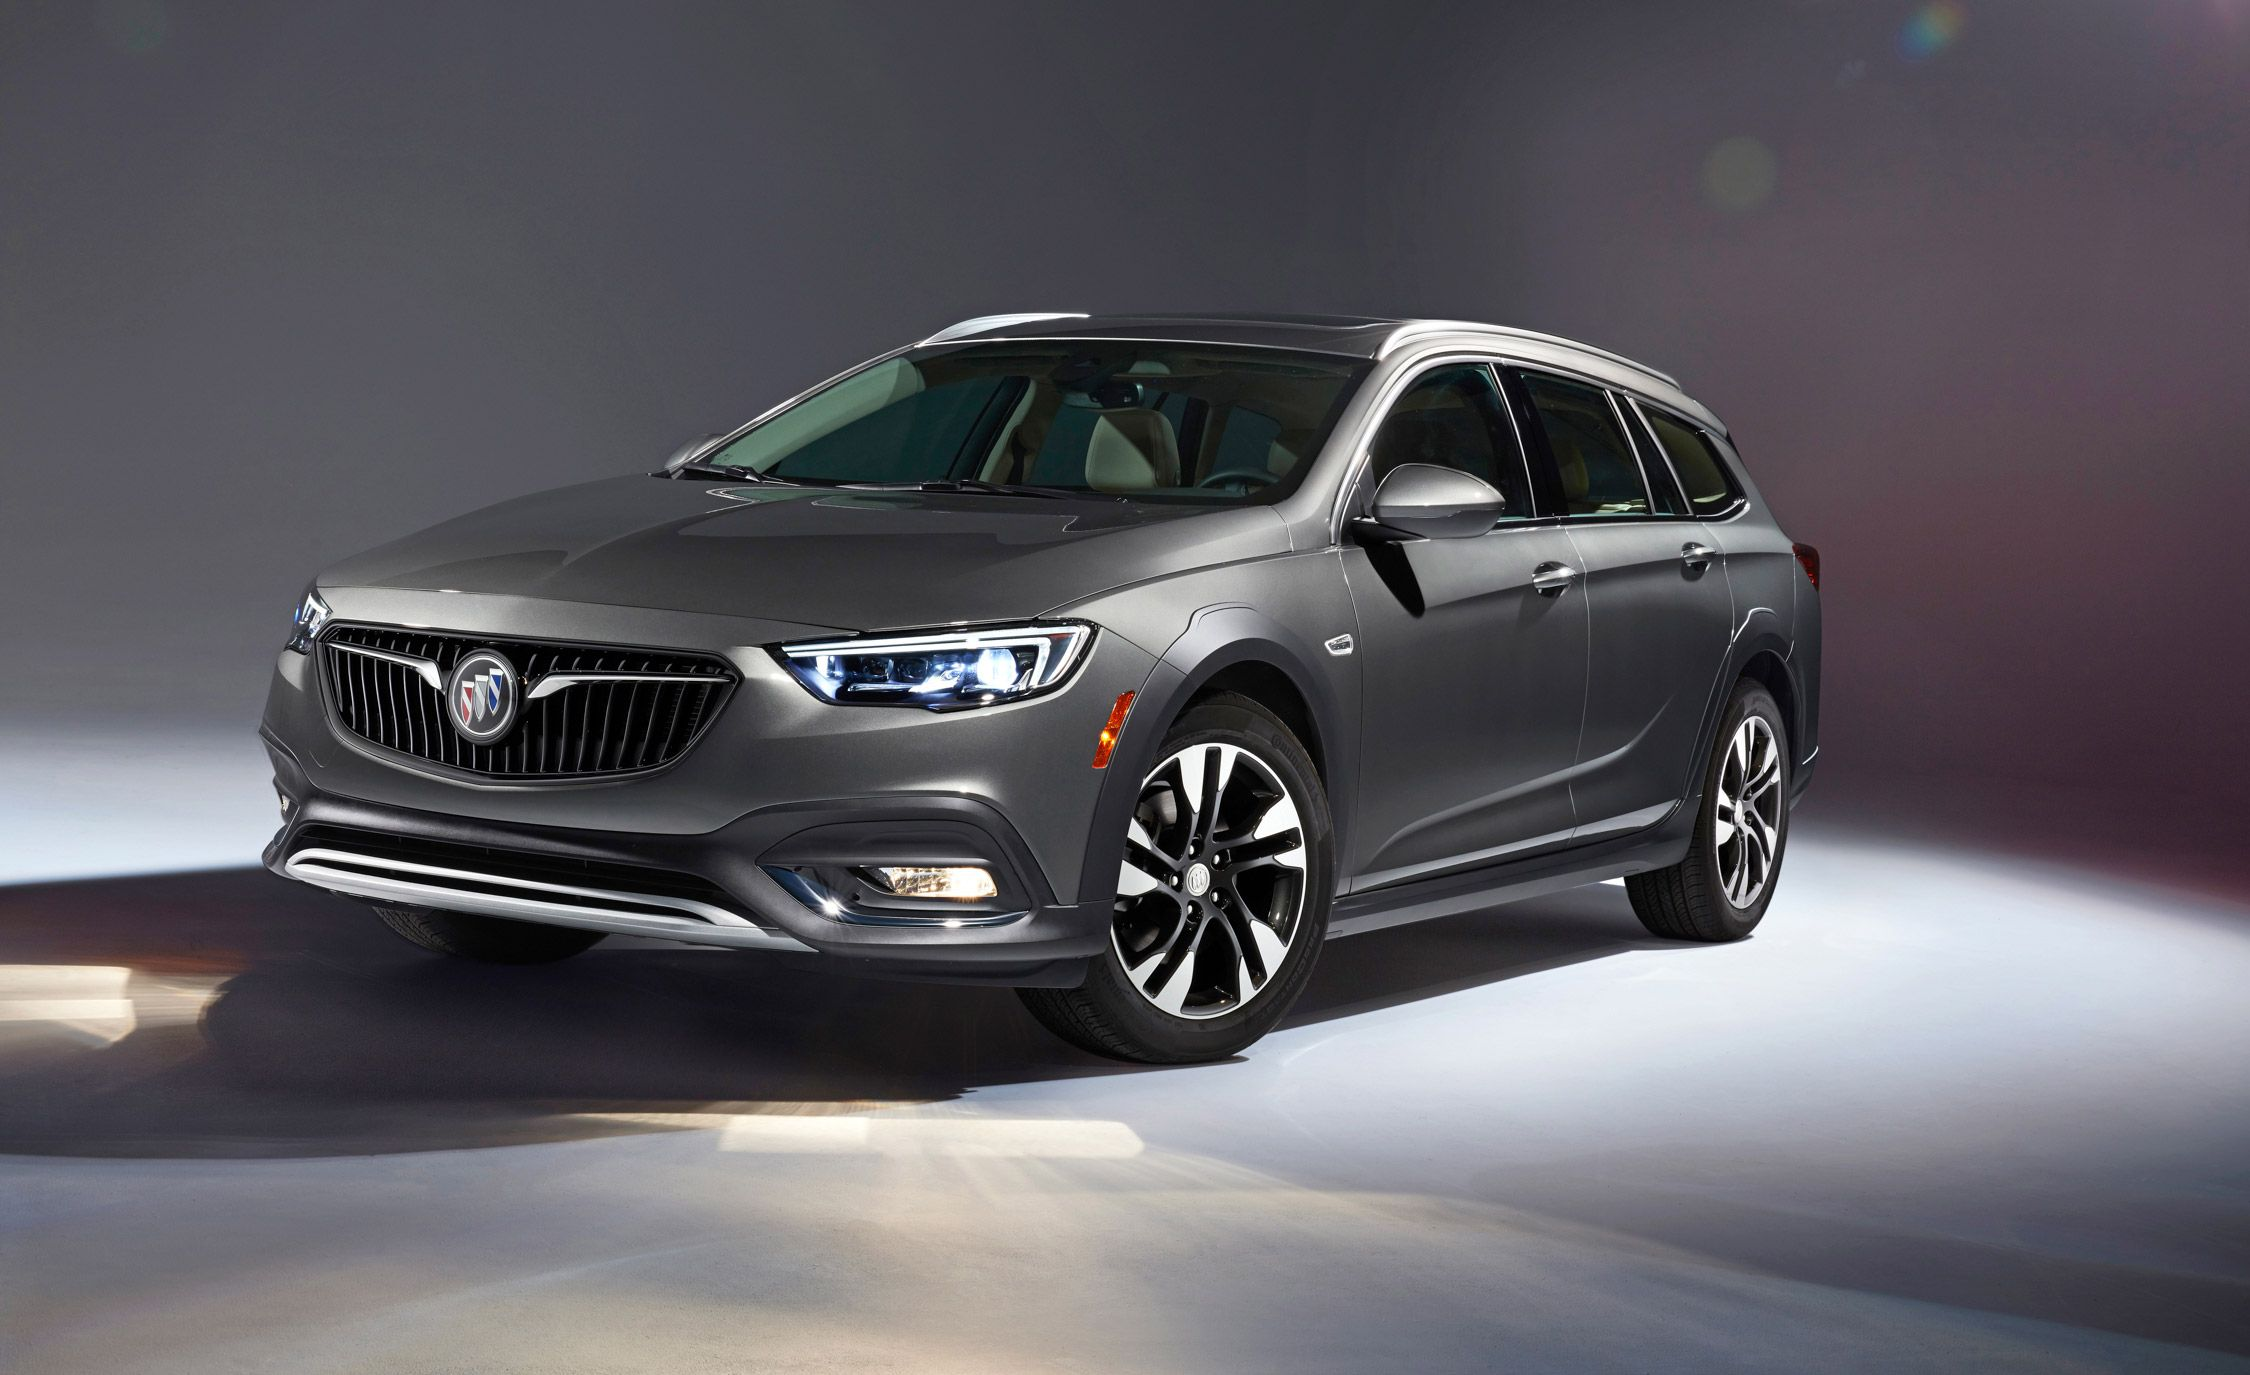 2018 Buick Regal TourX Dissected: Exterior, Chassis, Powertrain, and More!